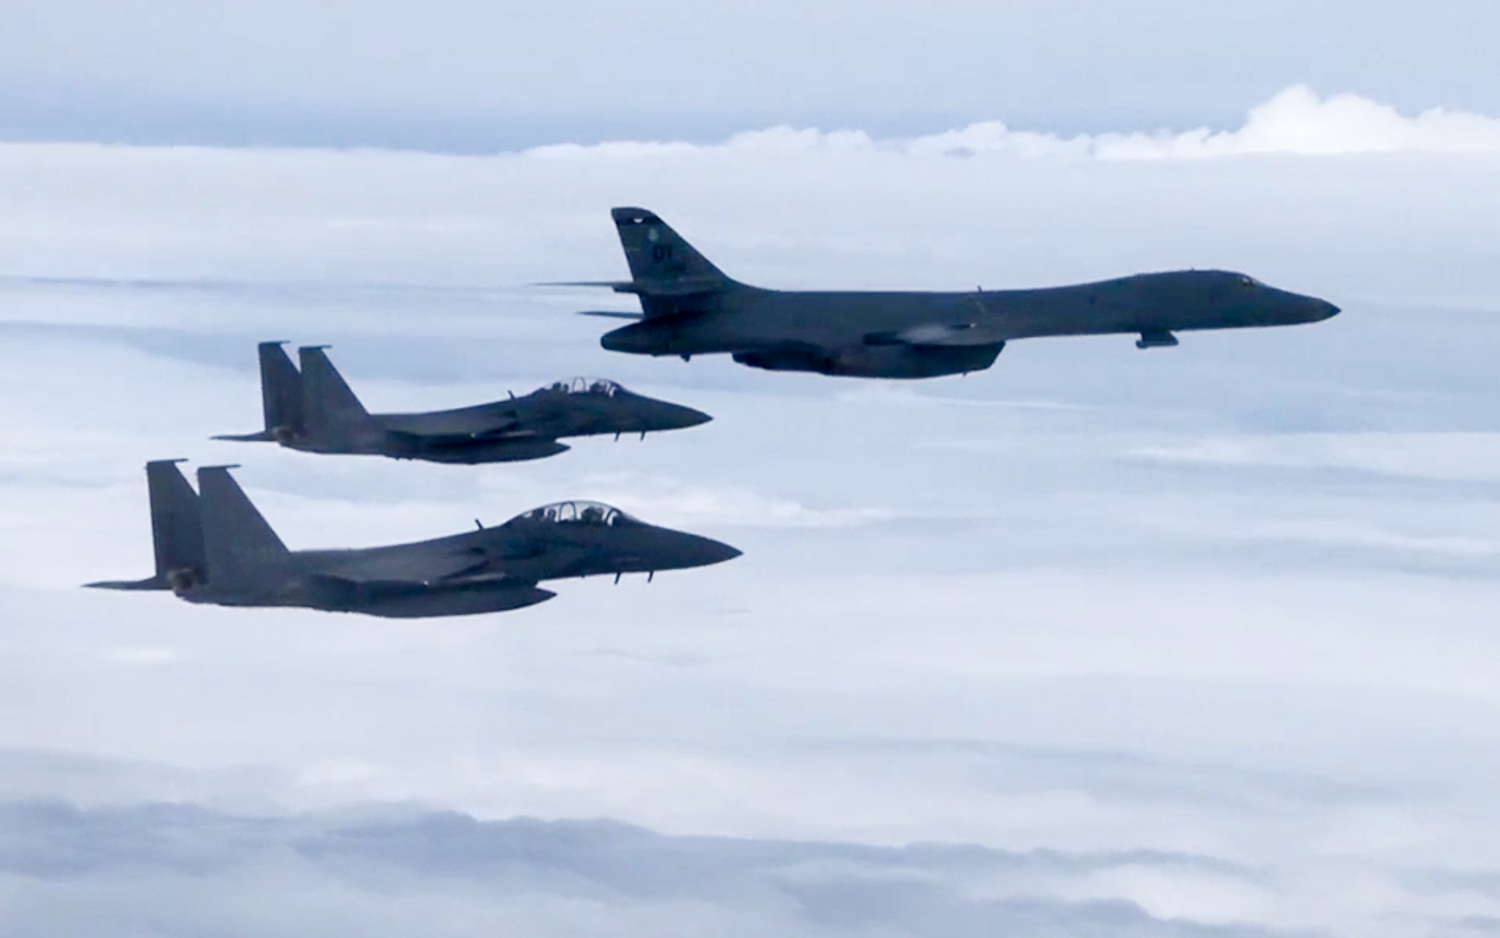 USA bombers drill near South Korea DMZ in show of force